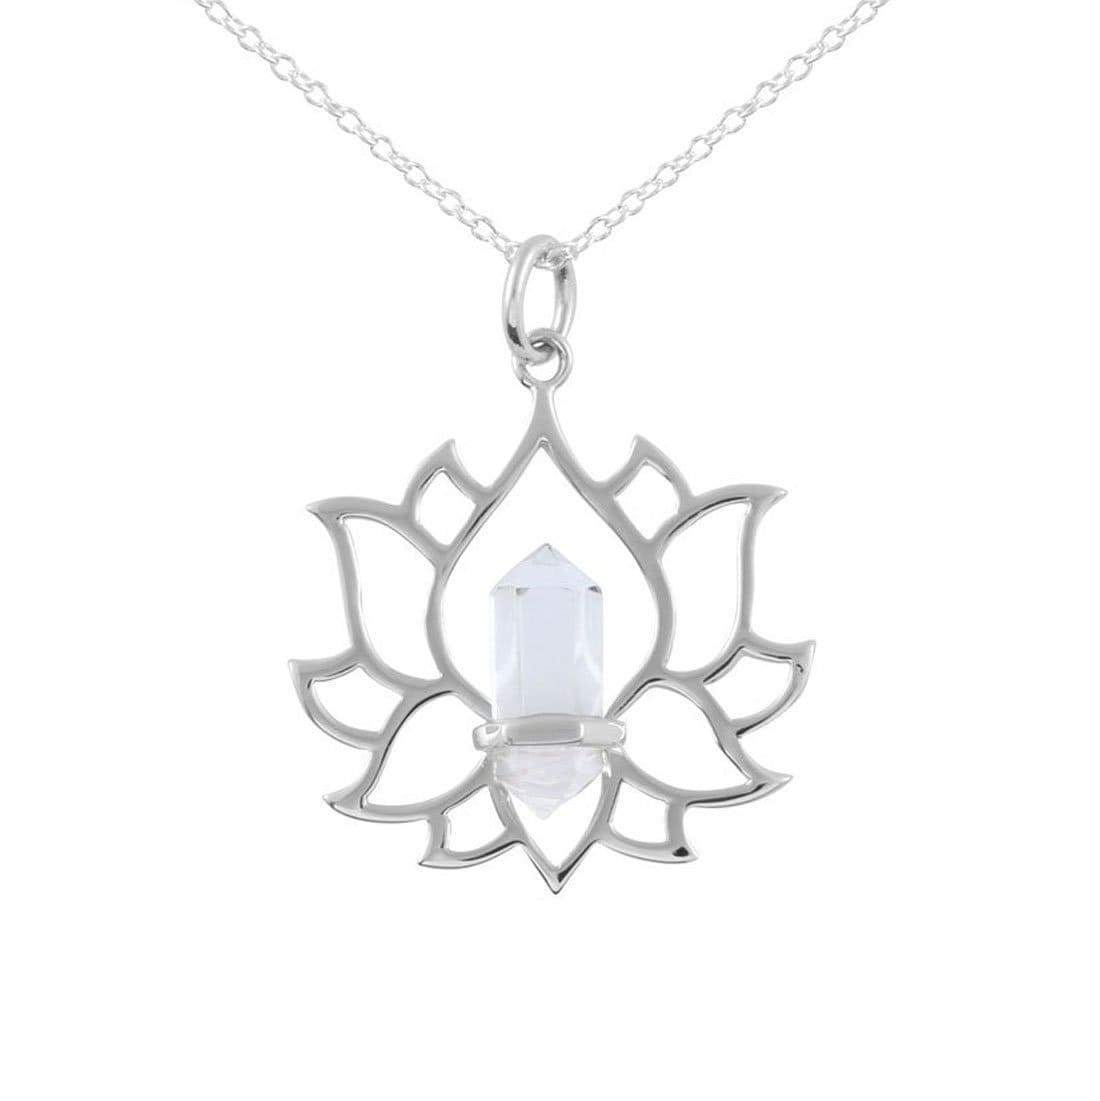 Midsummer Star Necklaces Clear Quartz Everlasting Lotus Necklace